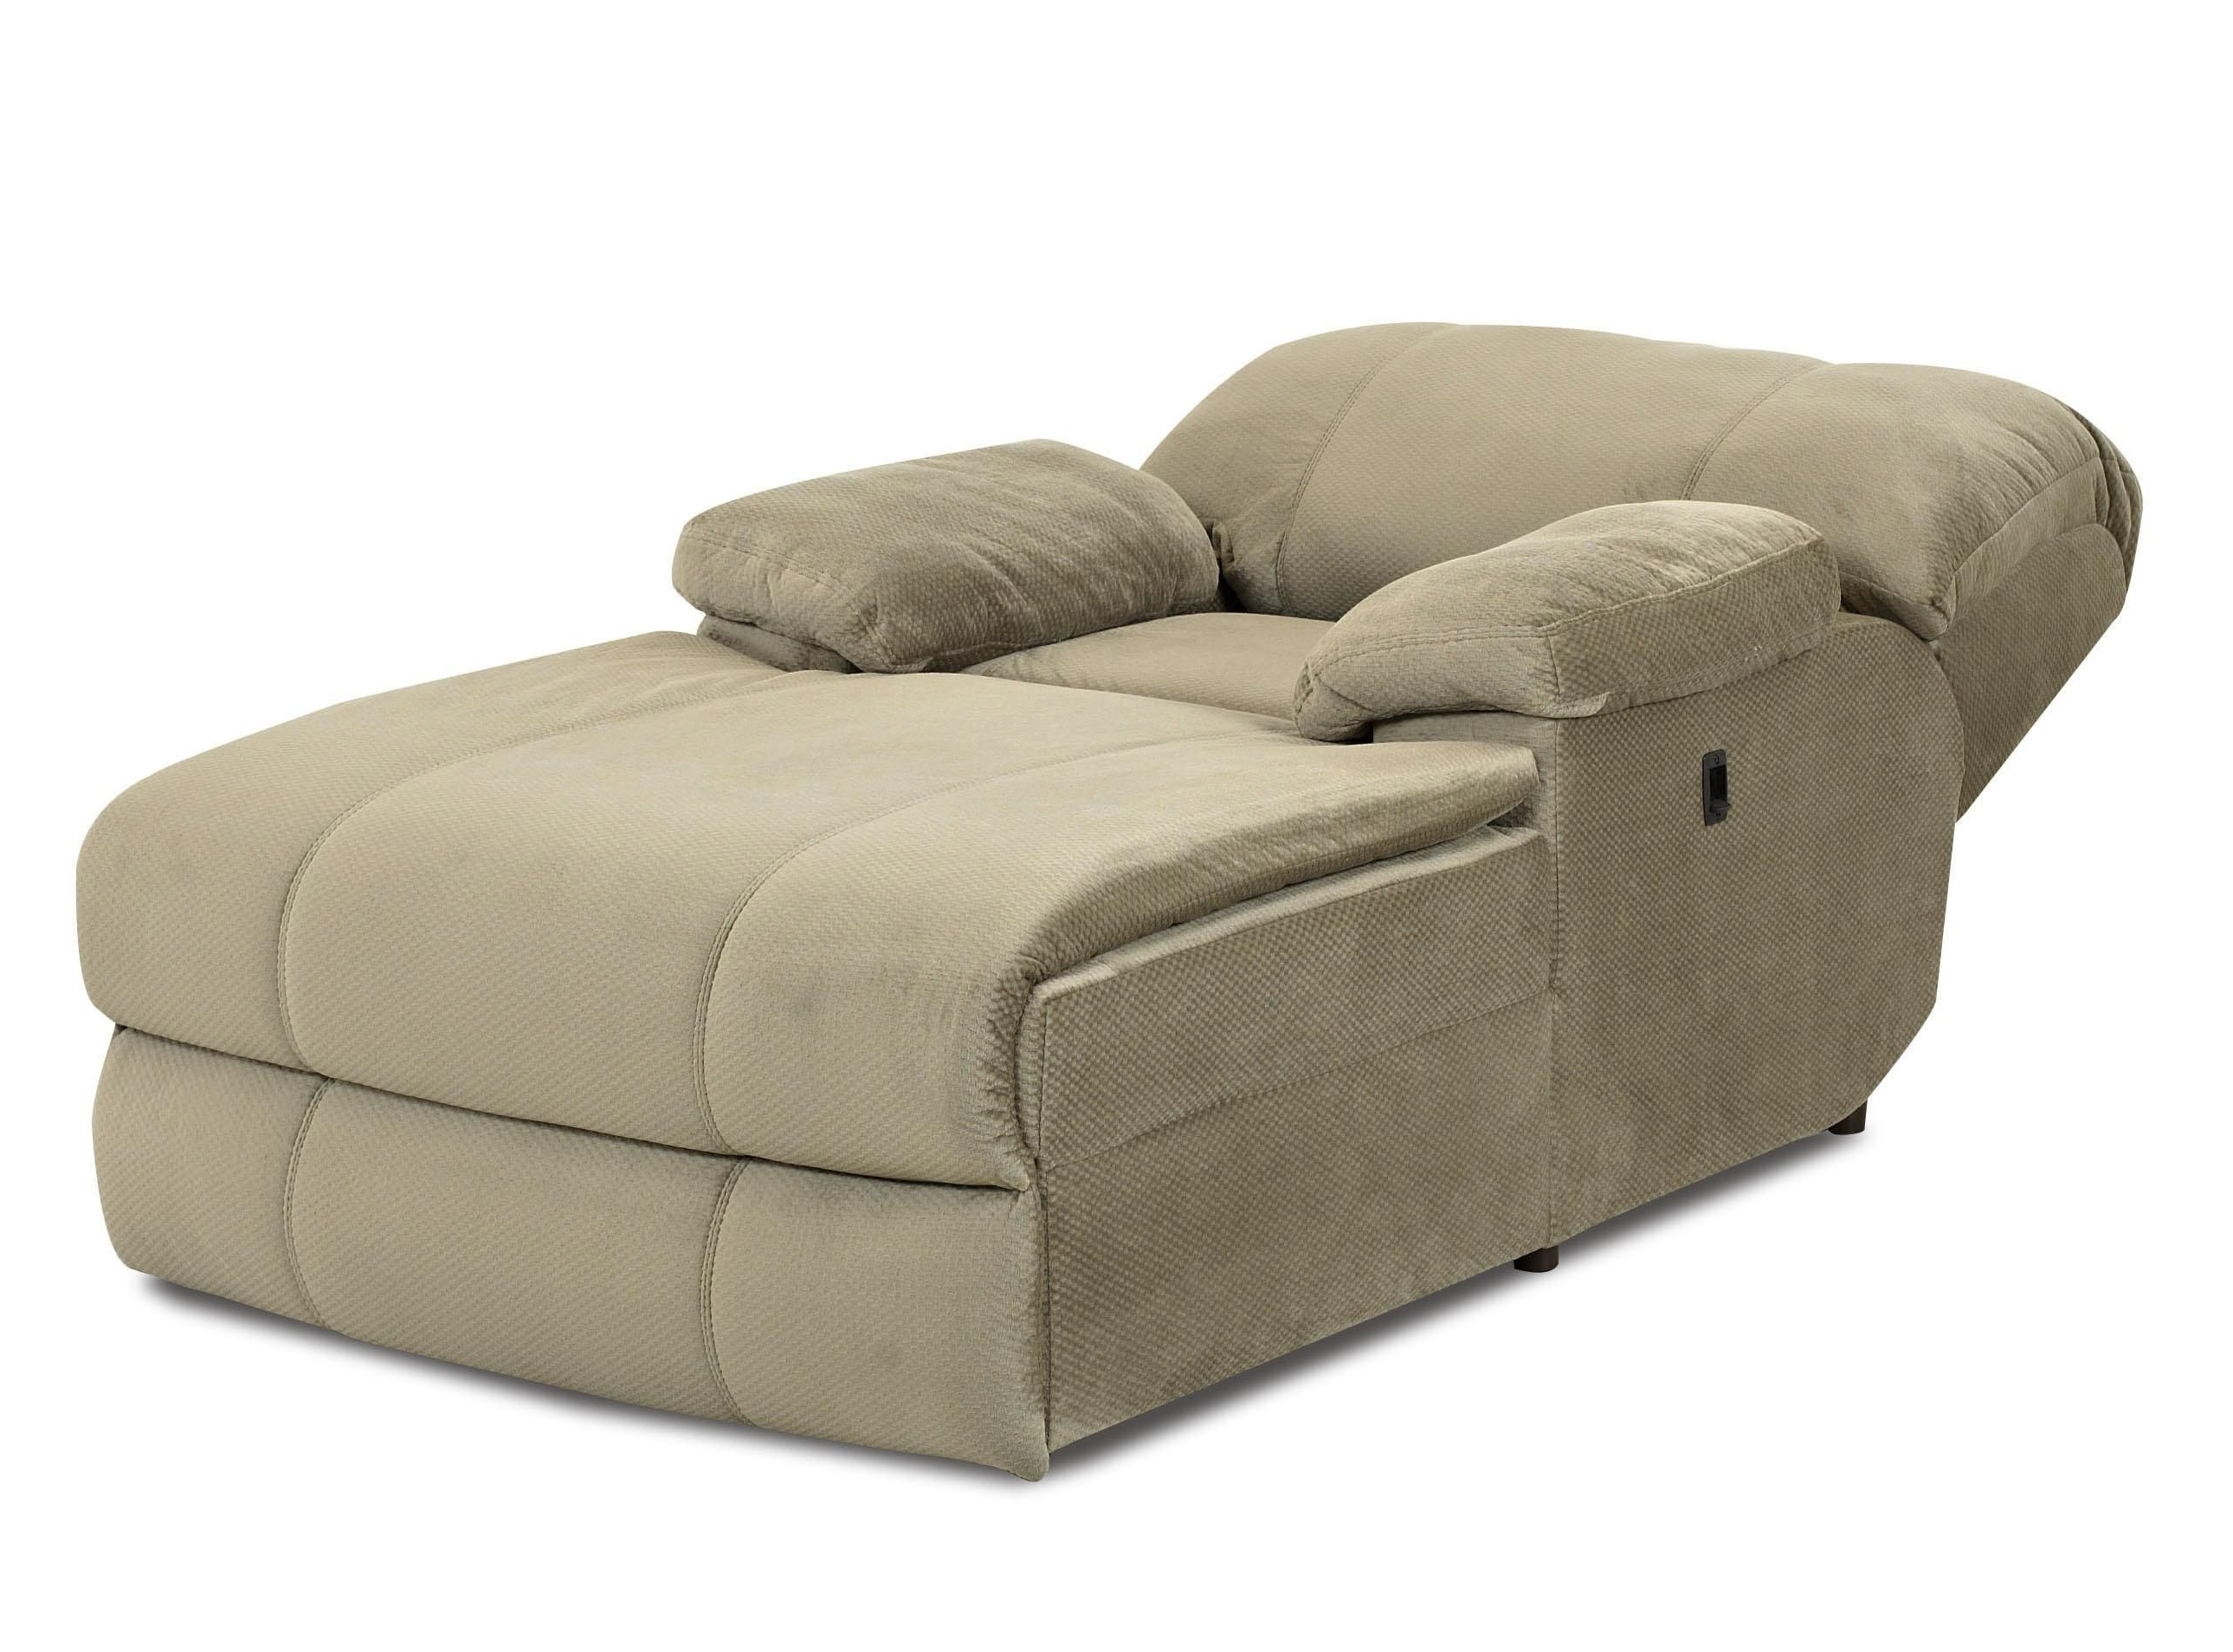 Trendy Indoor Oversized Chaise Lounge (View 3 of 15)